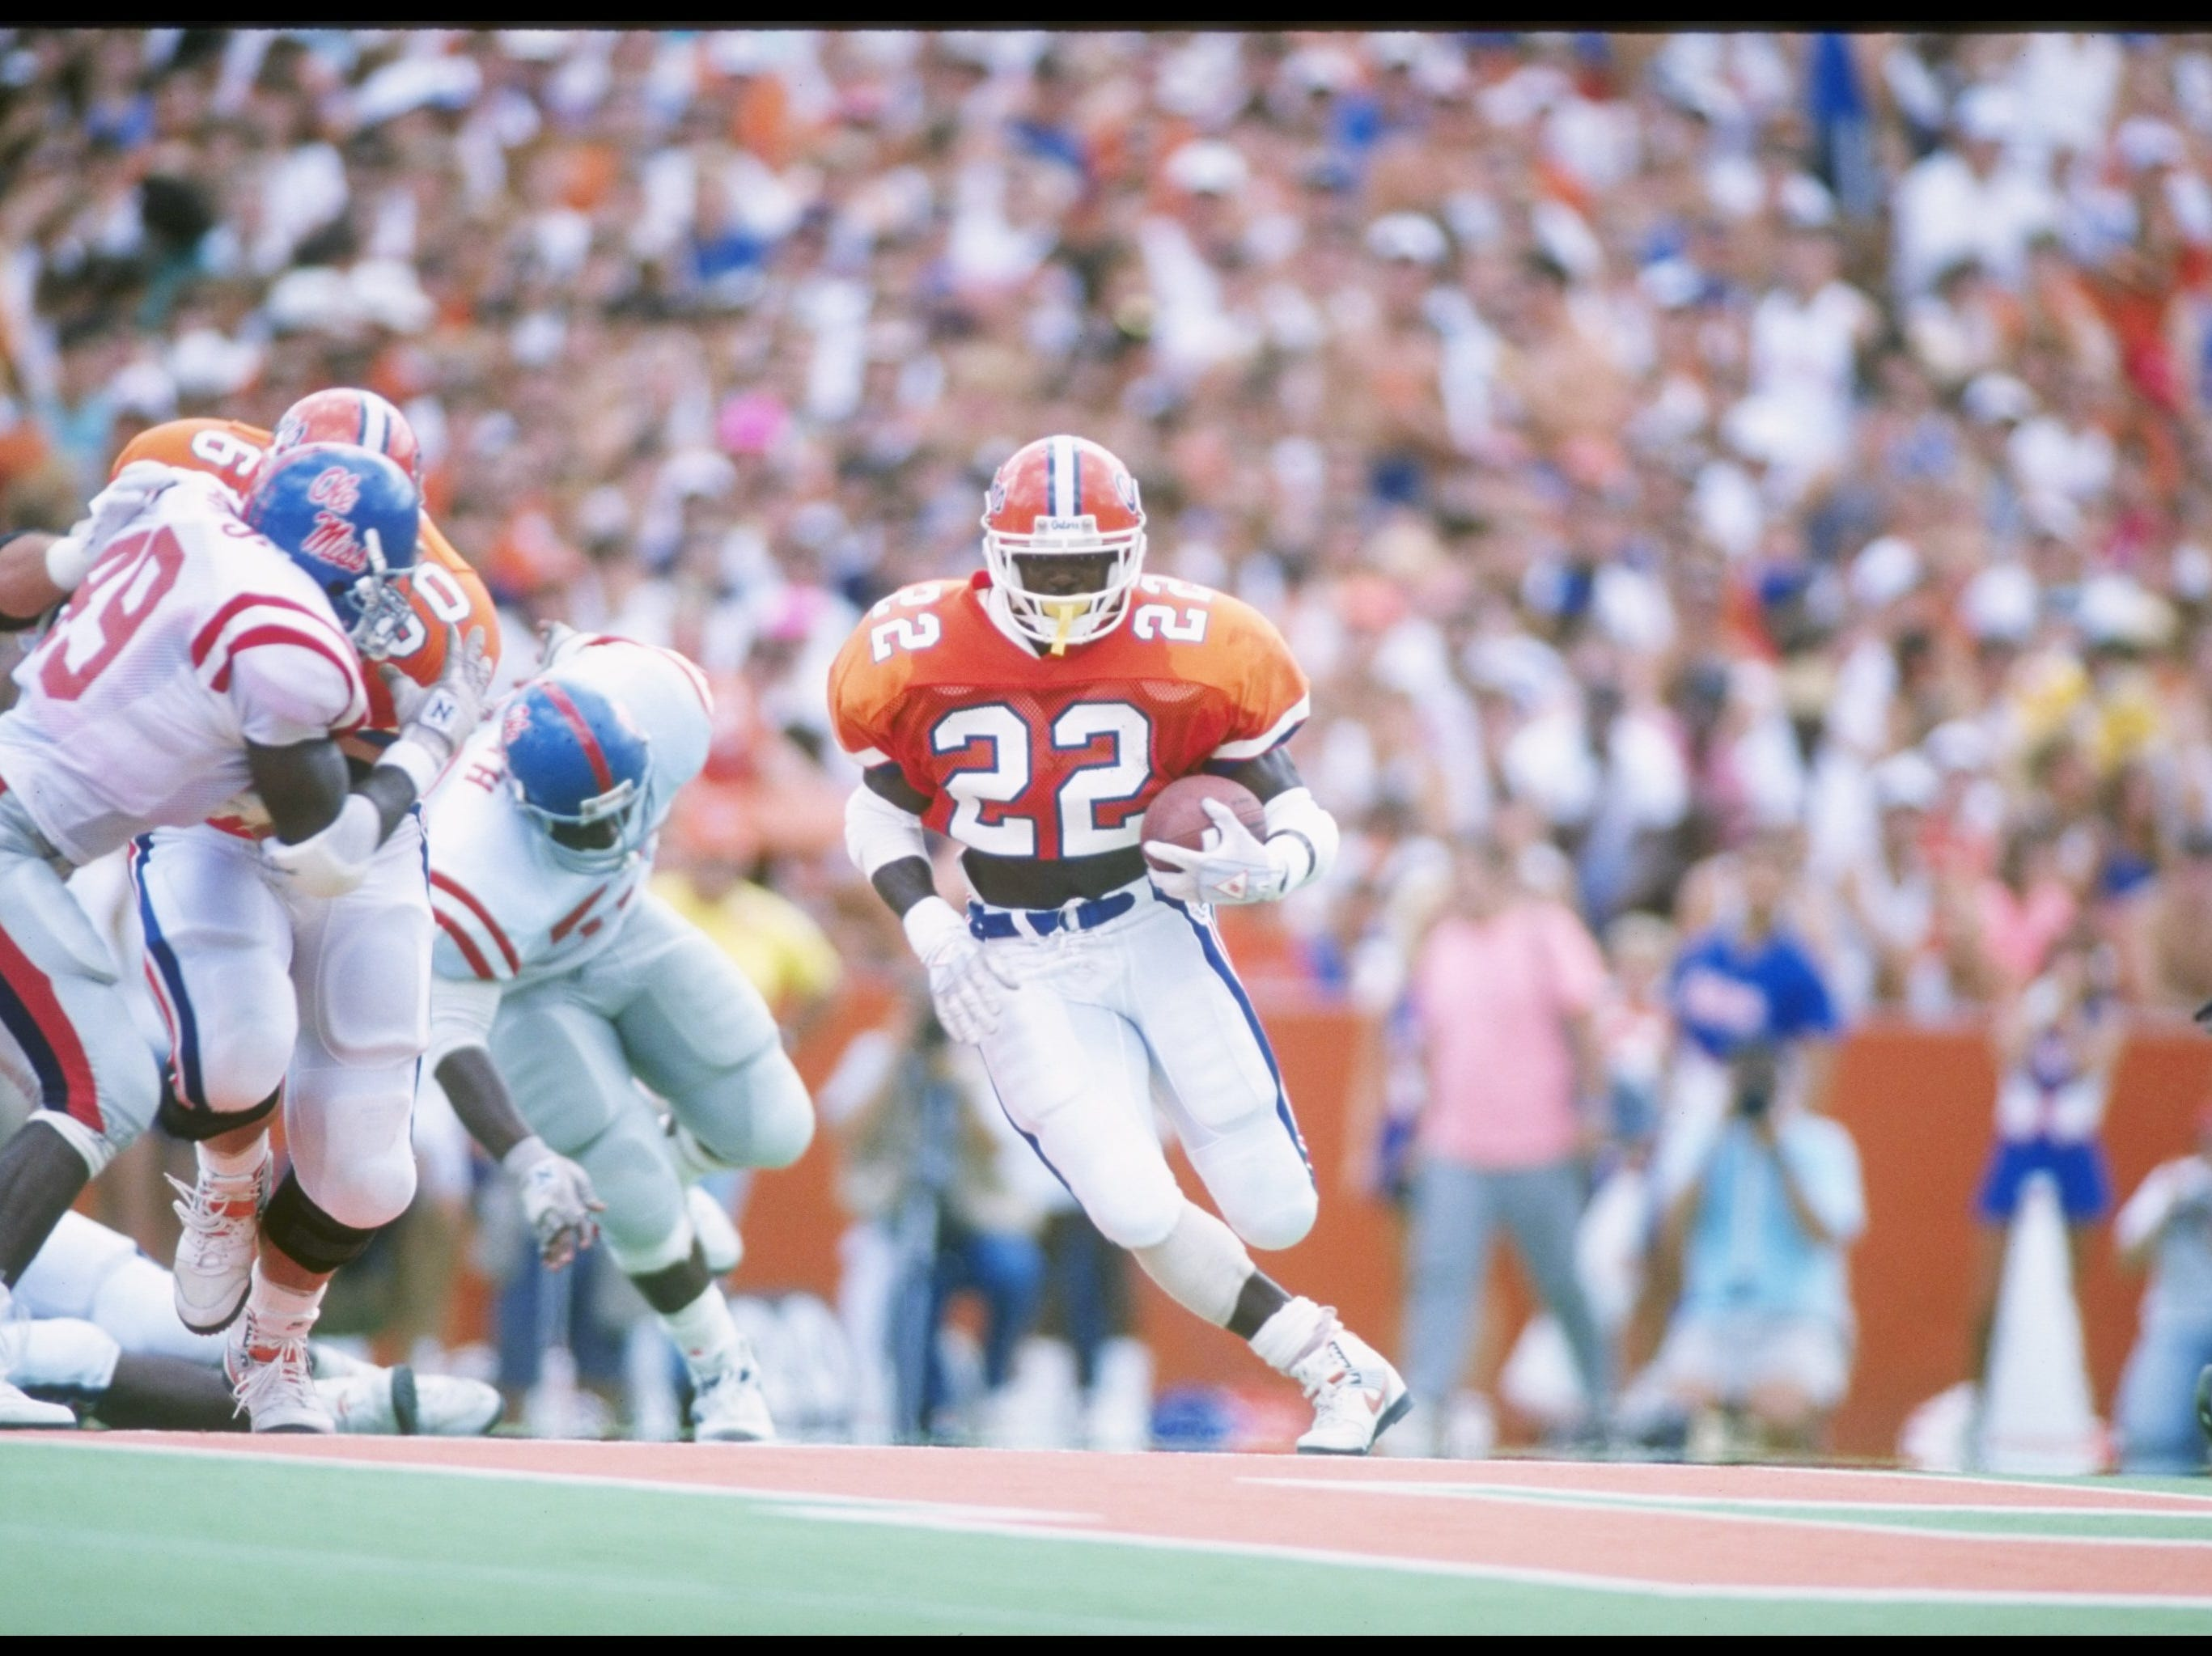 Running back Emmitt Smith of the Florida Gators runs down the field during a game against the Mississippi Rebels at Florida Field in Gainesville, Florida.  Mississippi won the game 24-19. Mandatory Credit: Allen Dean Steele  /Allsport